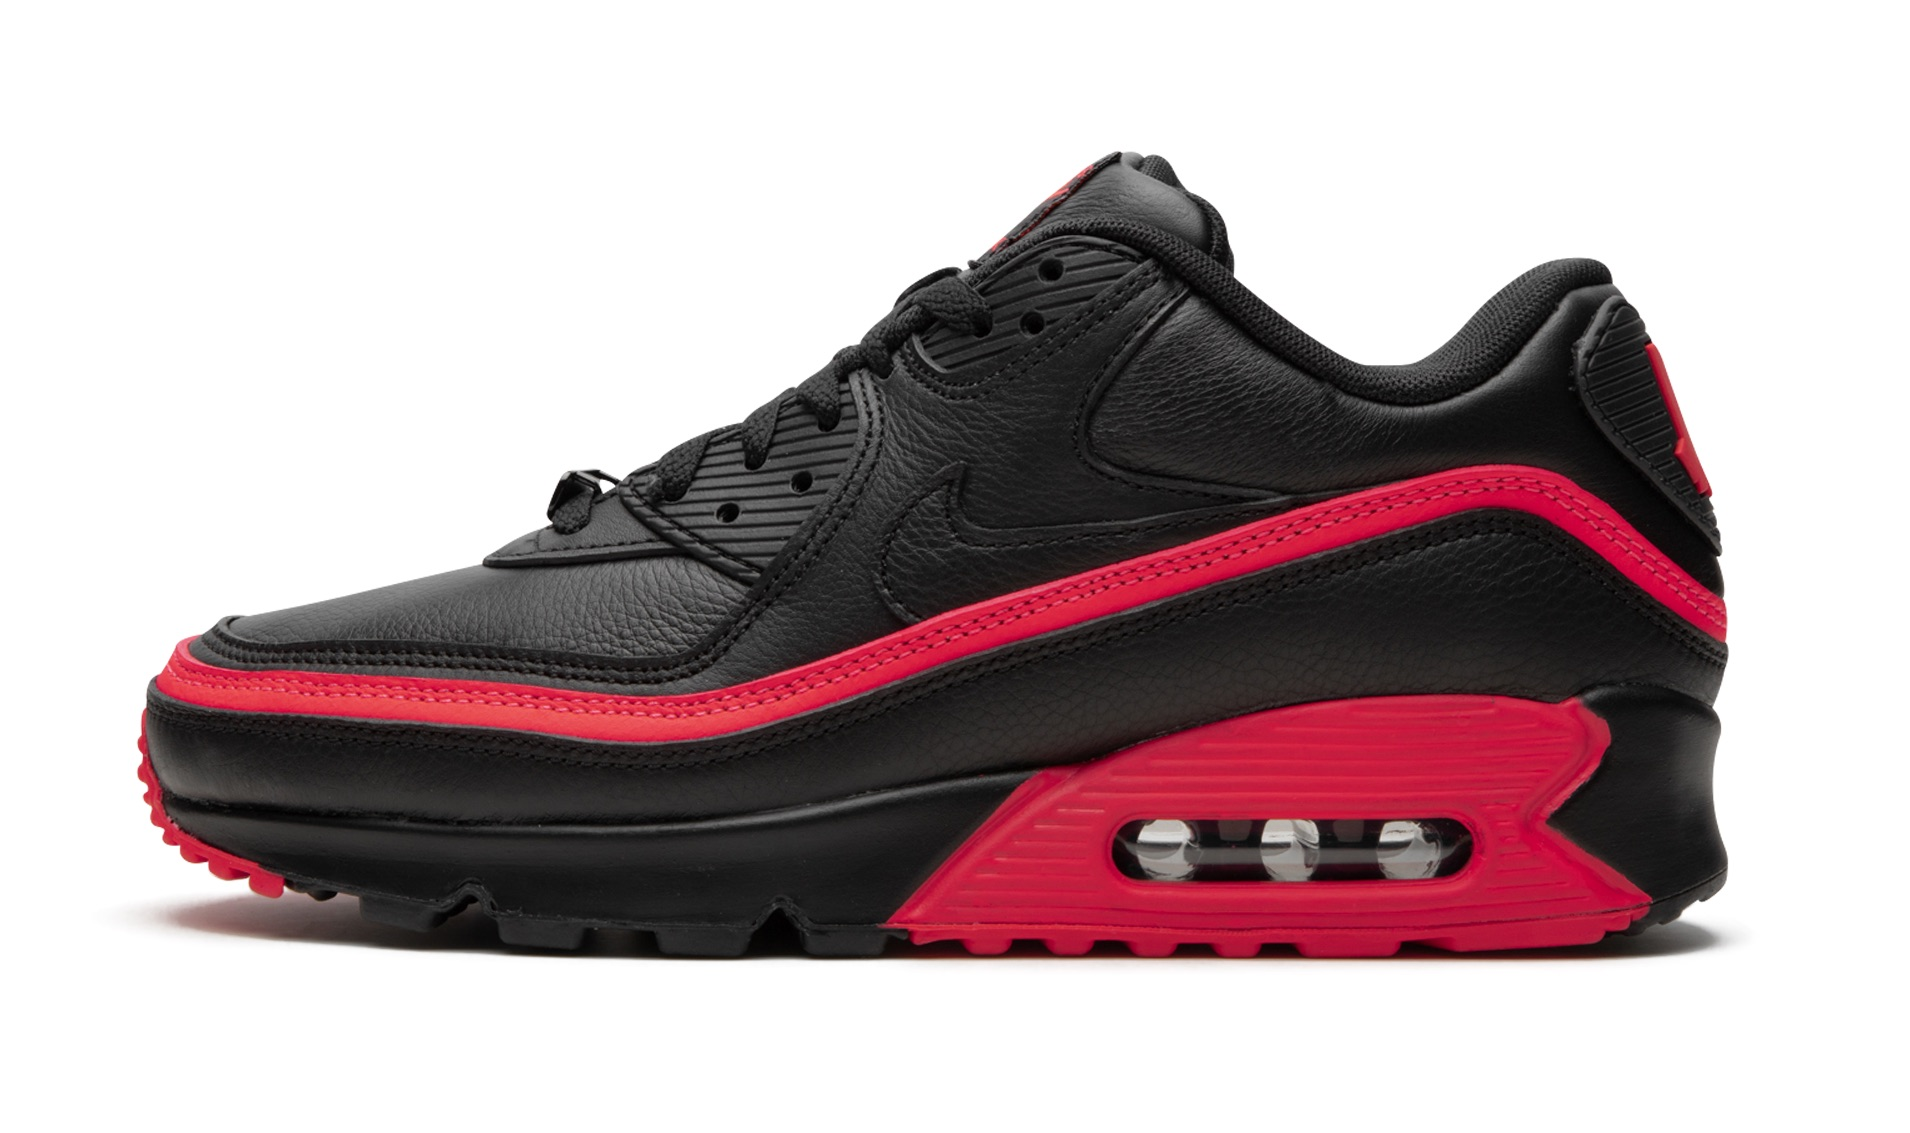 Look Out For The UNDEFEATED x Nike Air Max 90 Black Red